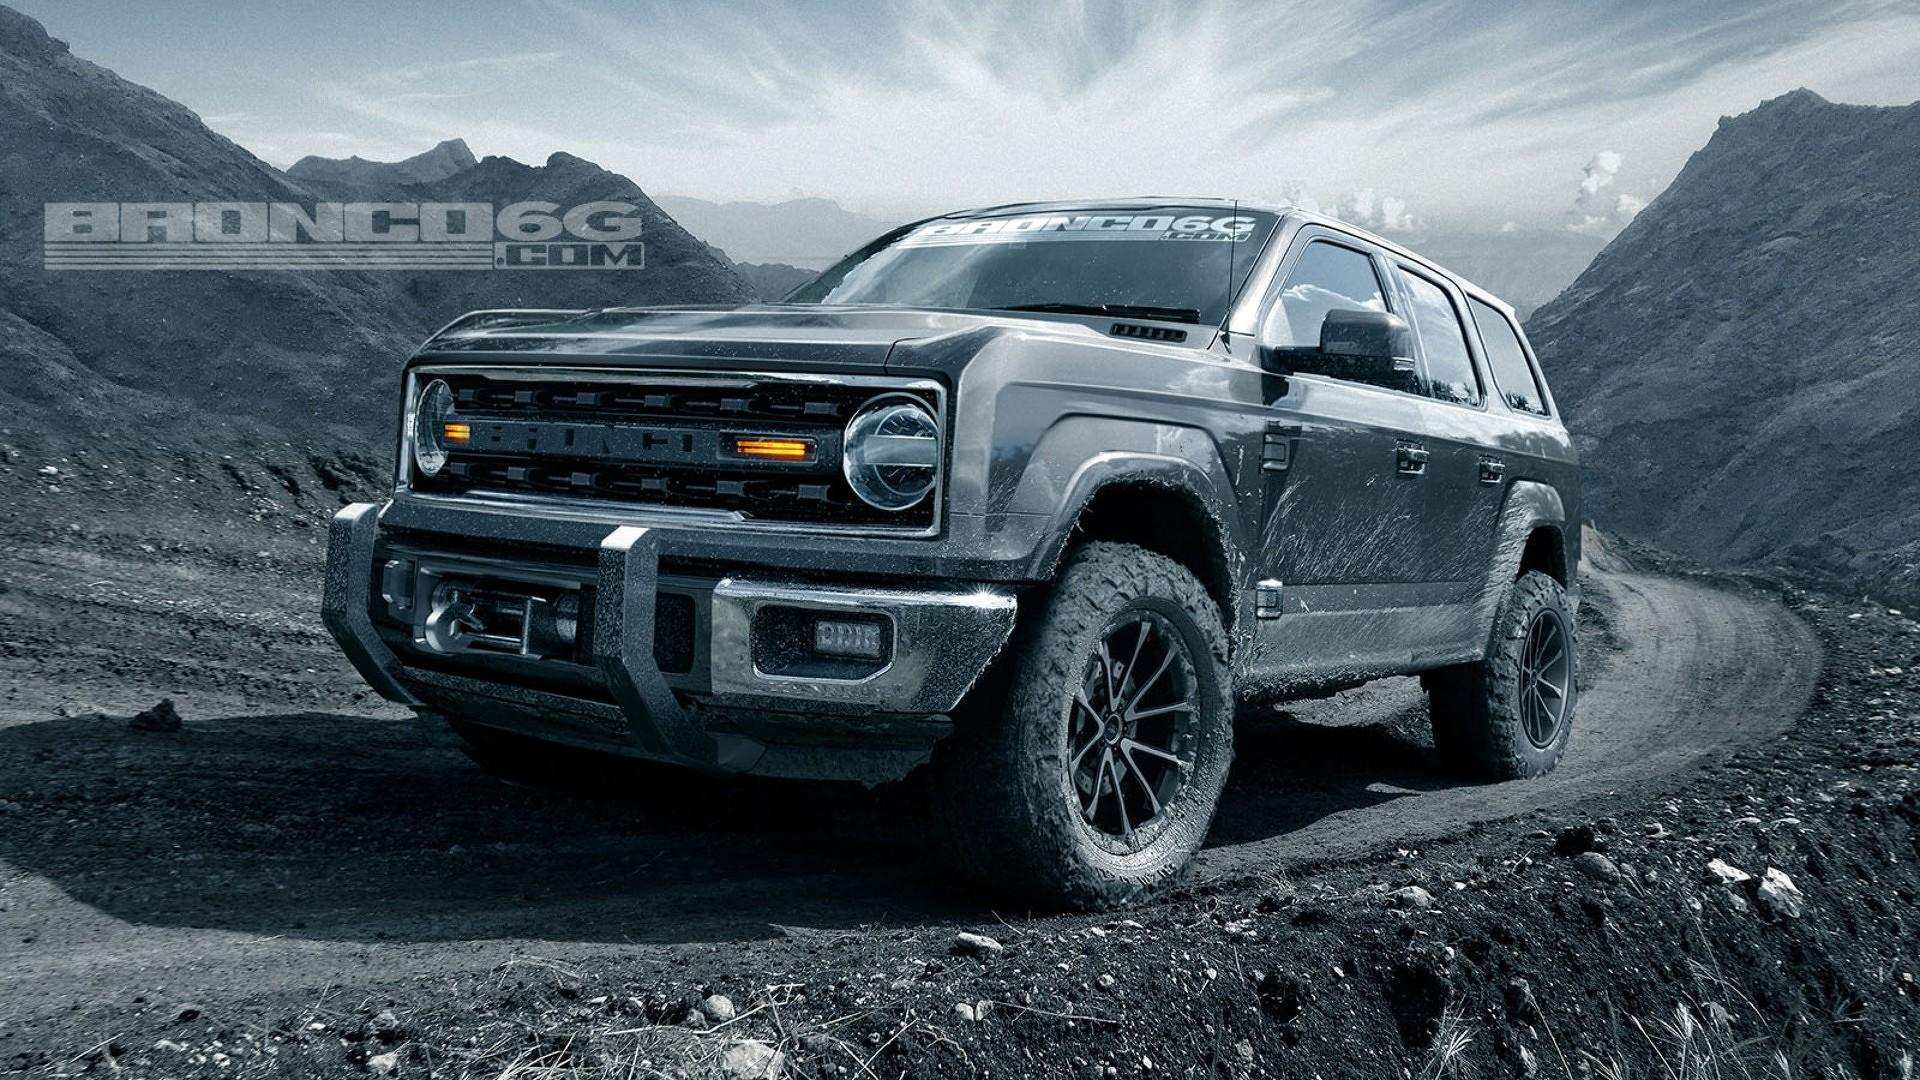 73 A 2019 Ford Bronco 4 Door Release Date And Concept